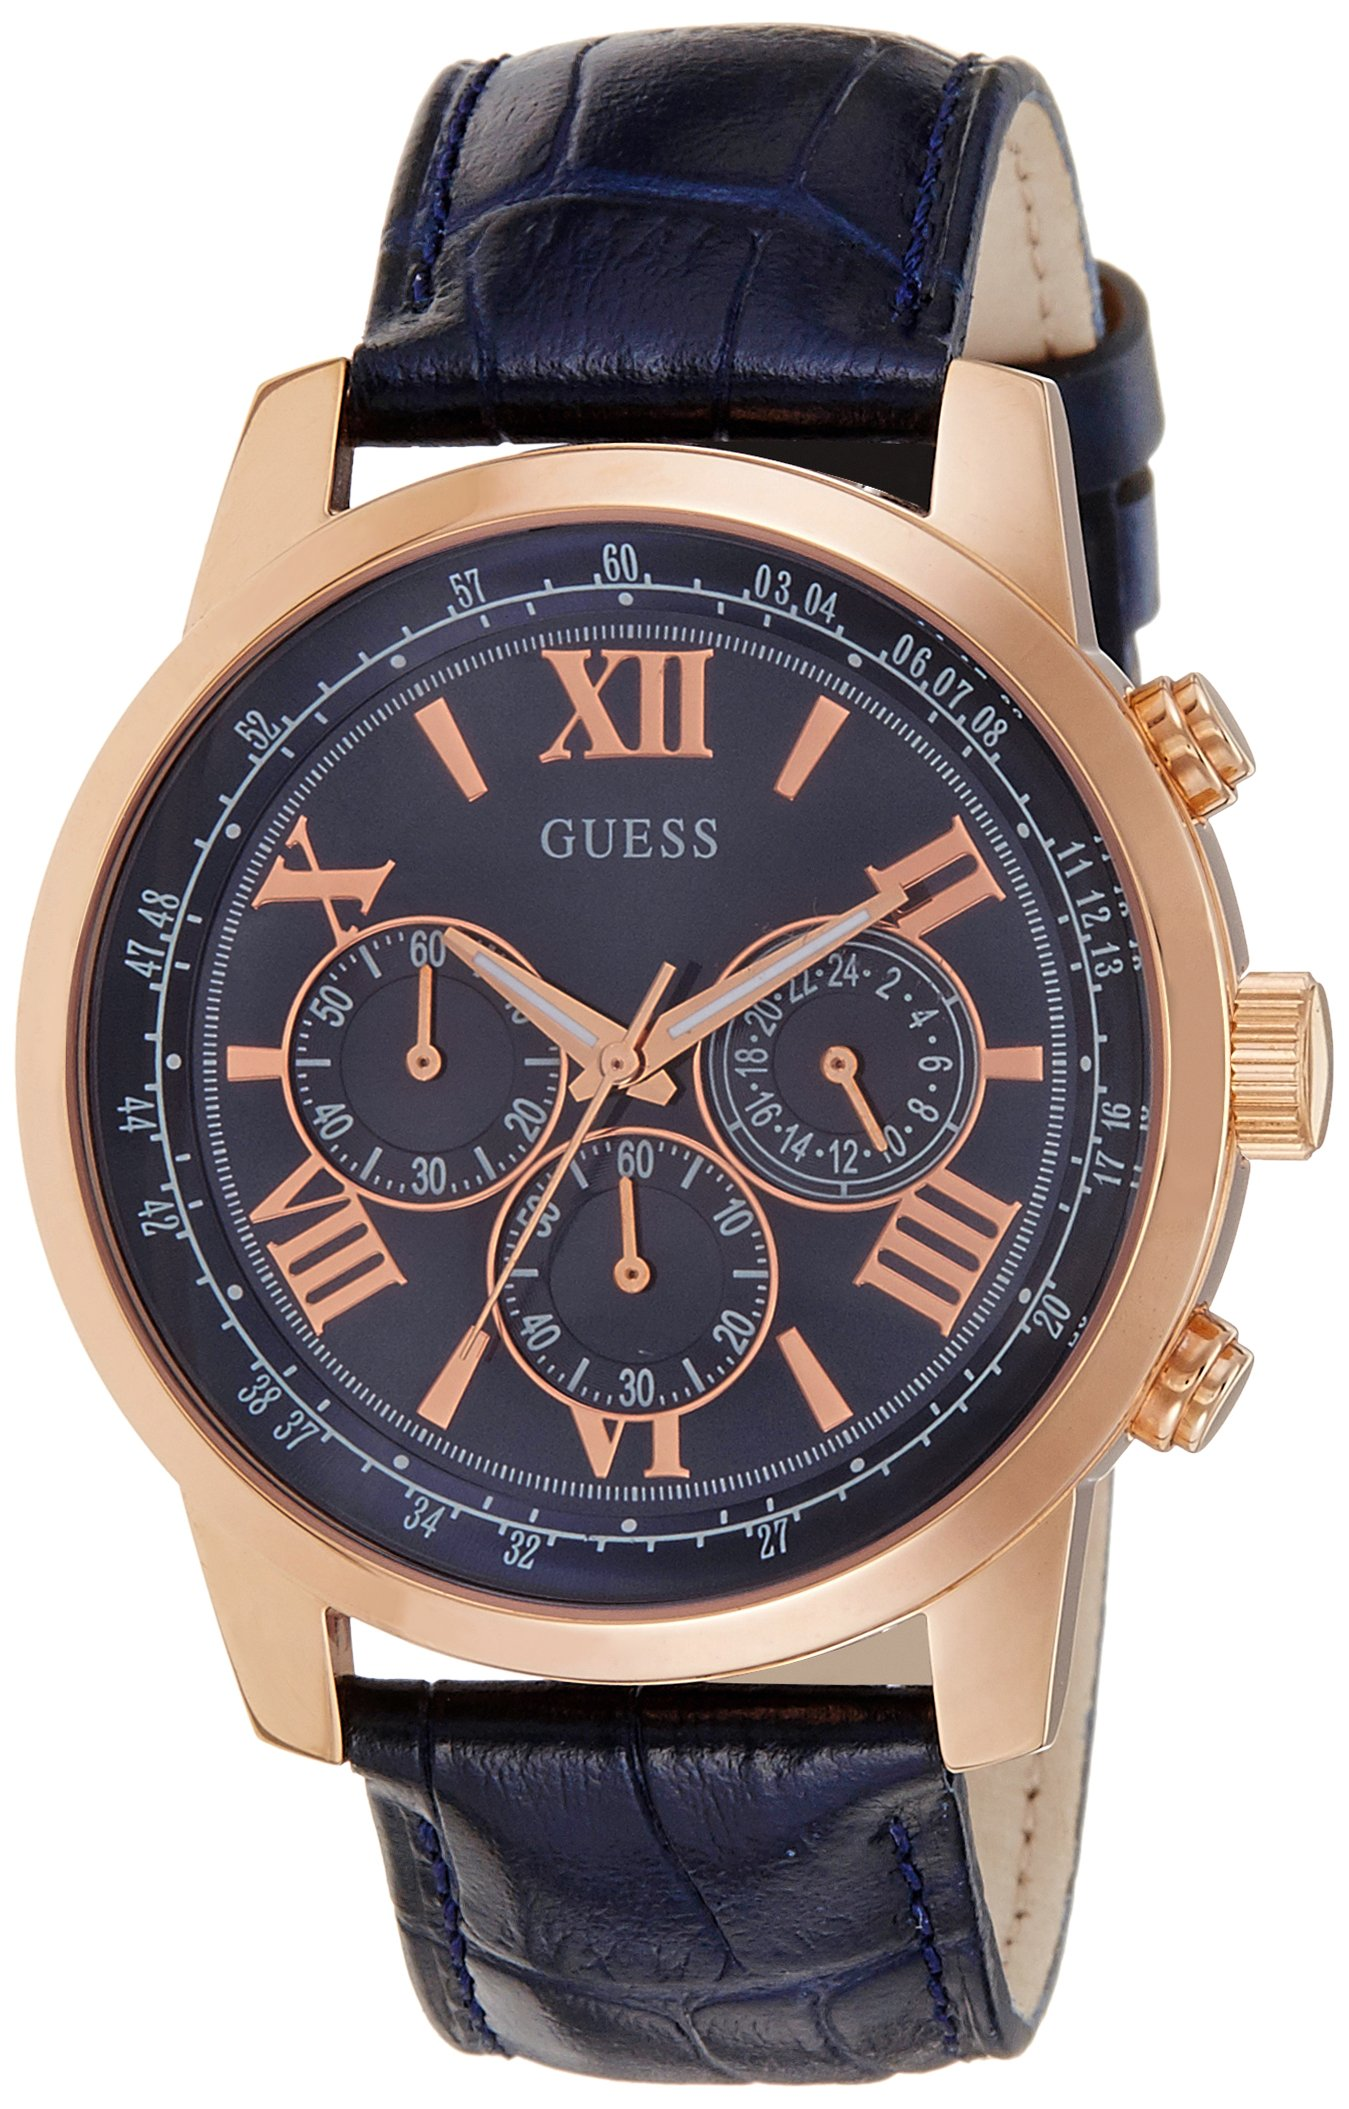 GUESS Men's W0380G5  Blue Dial, Rose Gold-Tone Case, Leather Strap, Iconic Blue Chronograph Watch by GUESS